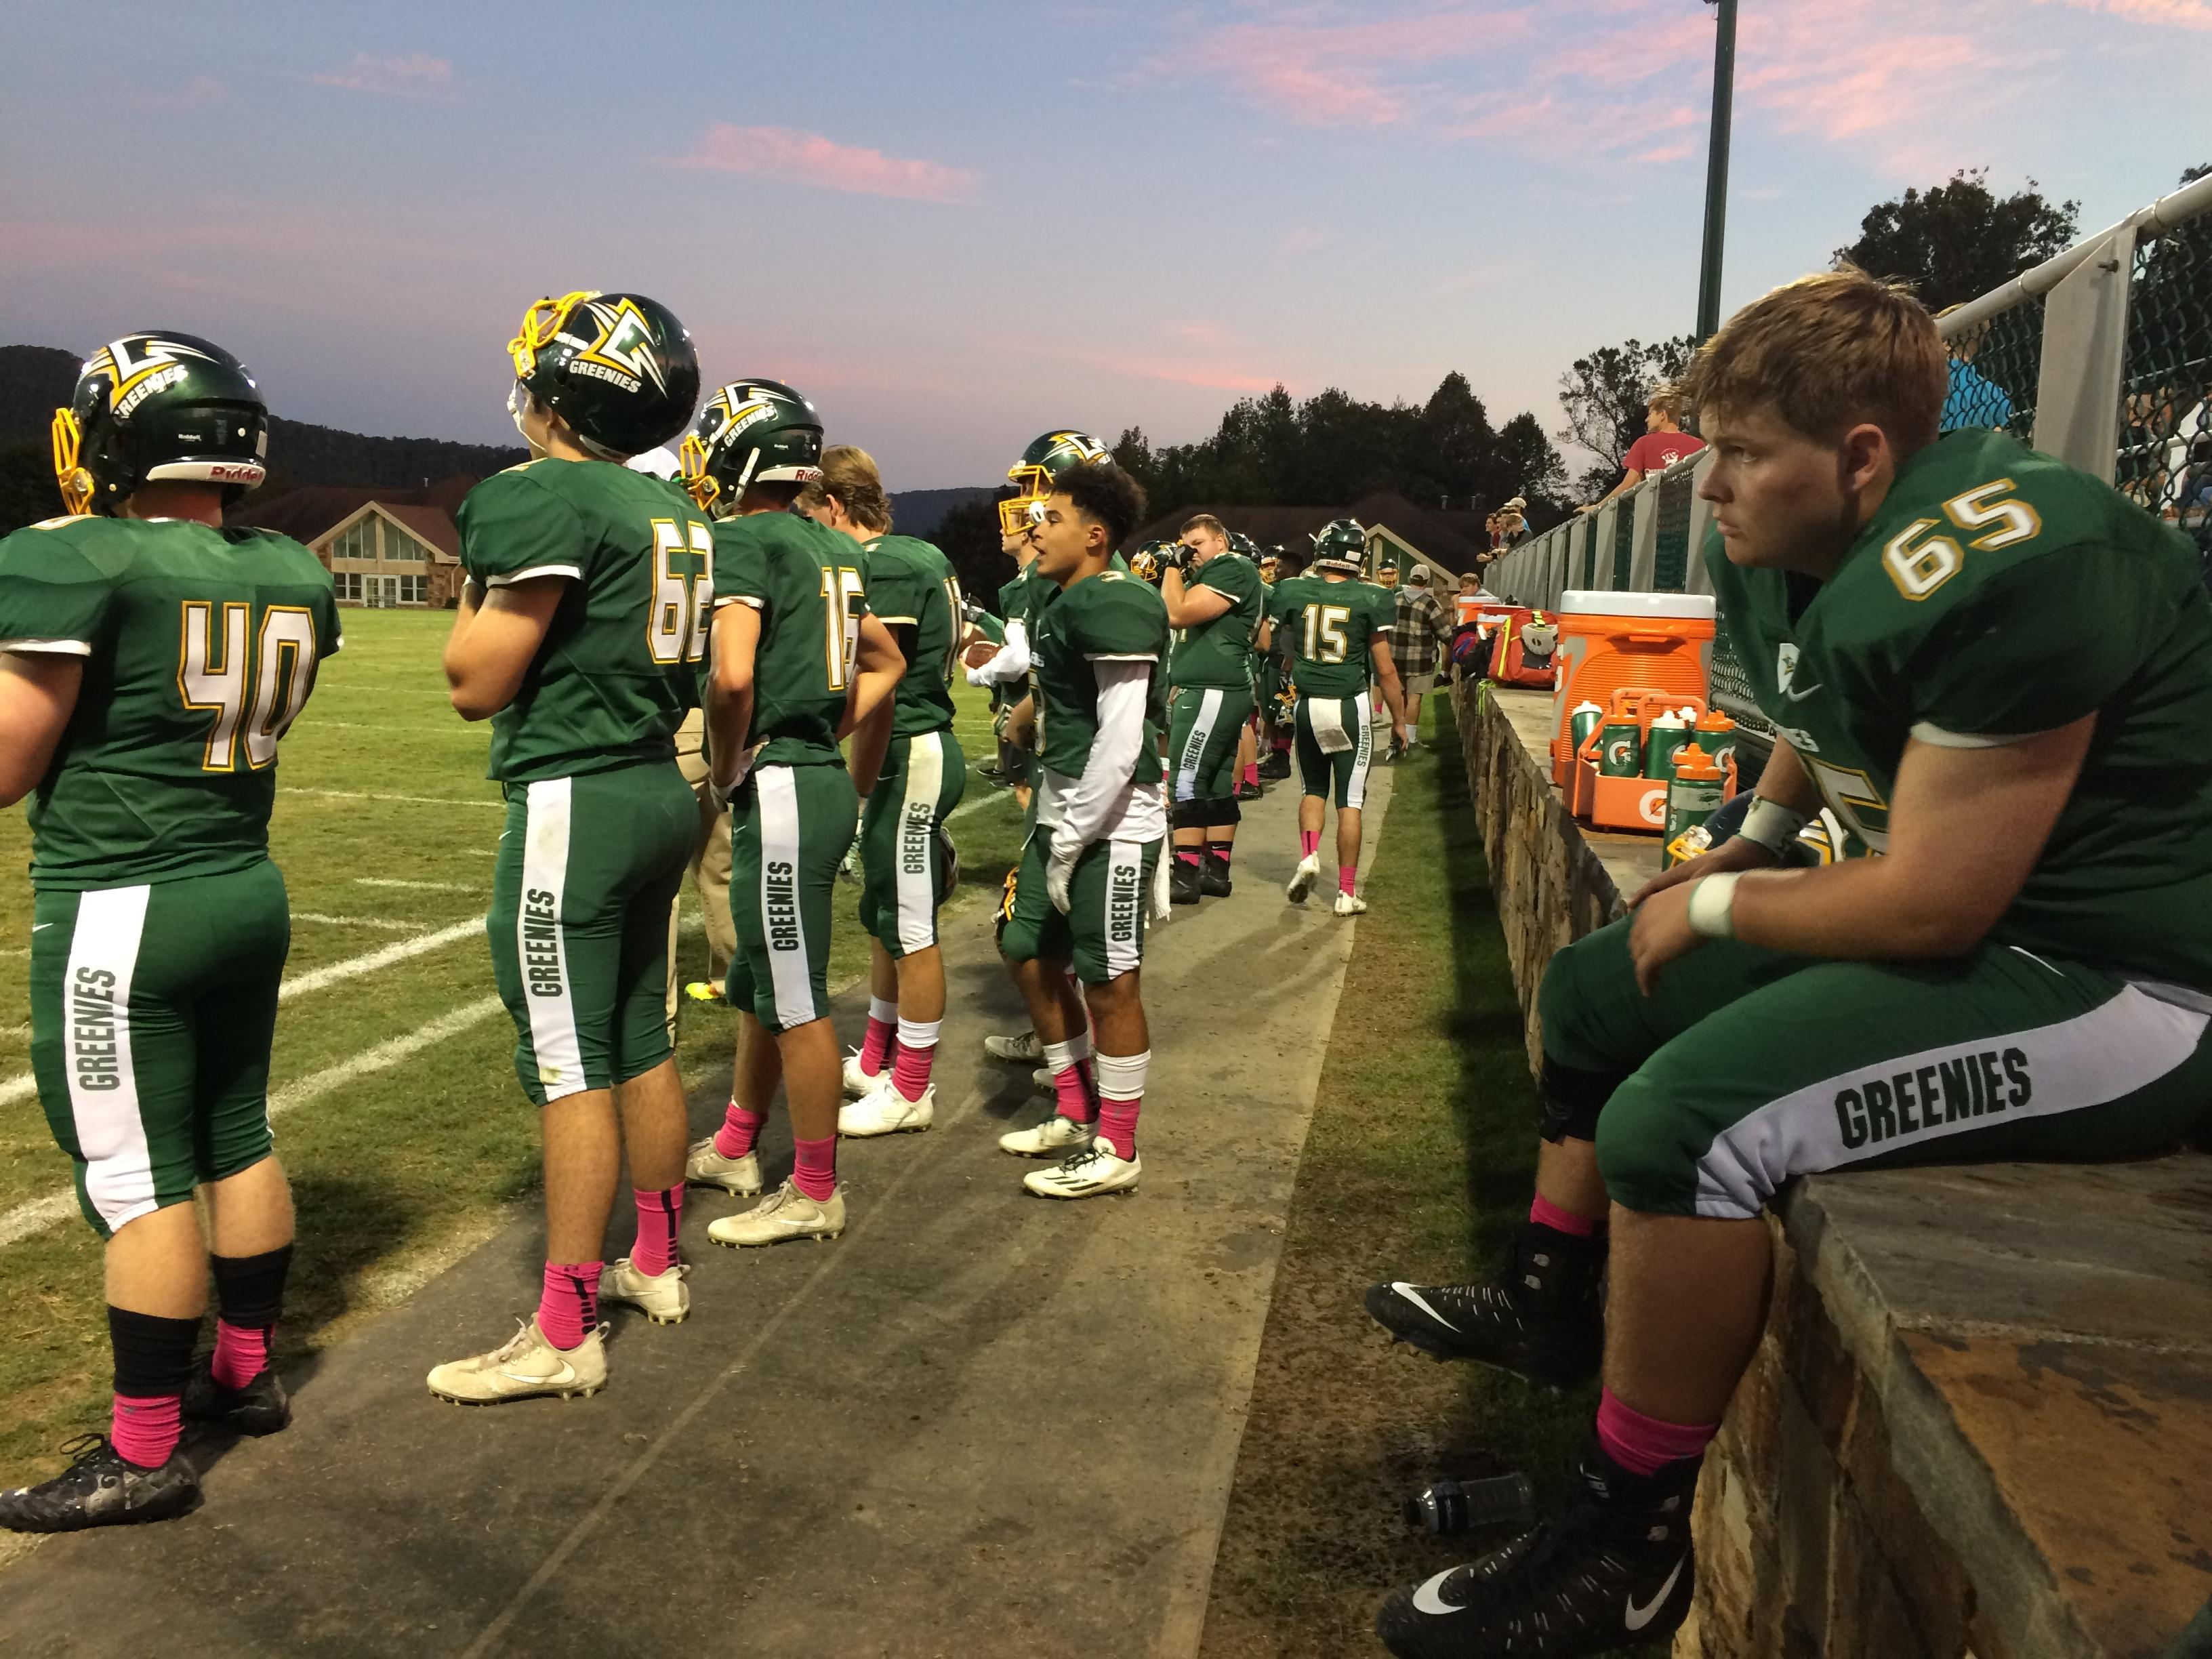 Rabun Gap vs Christ School, 10-06-2017 (Photo credit: WLOS Staff)